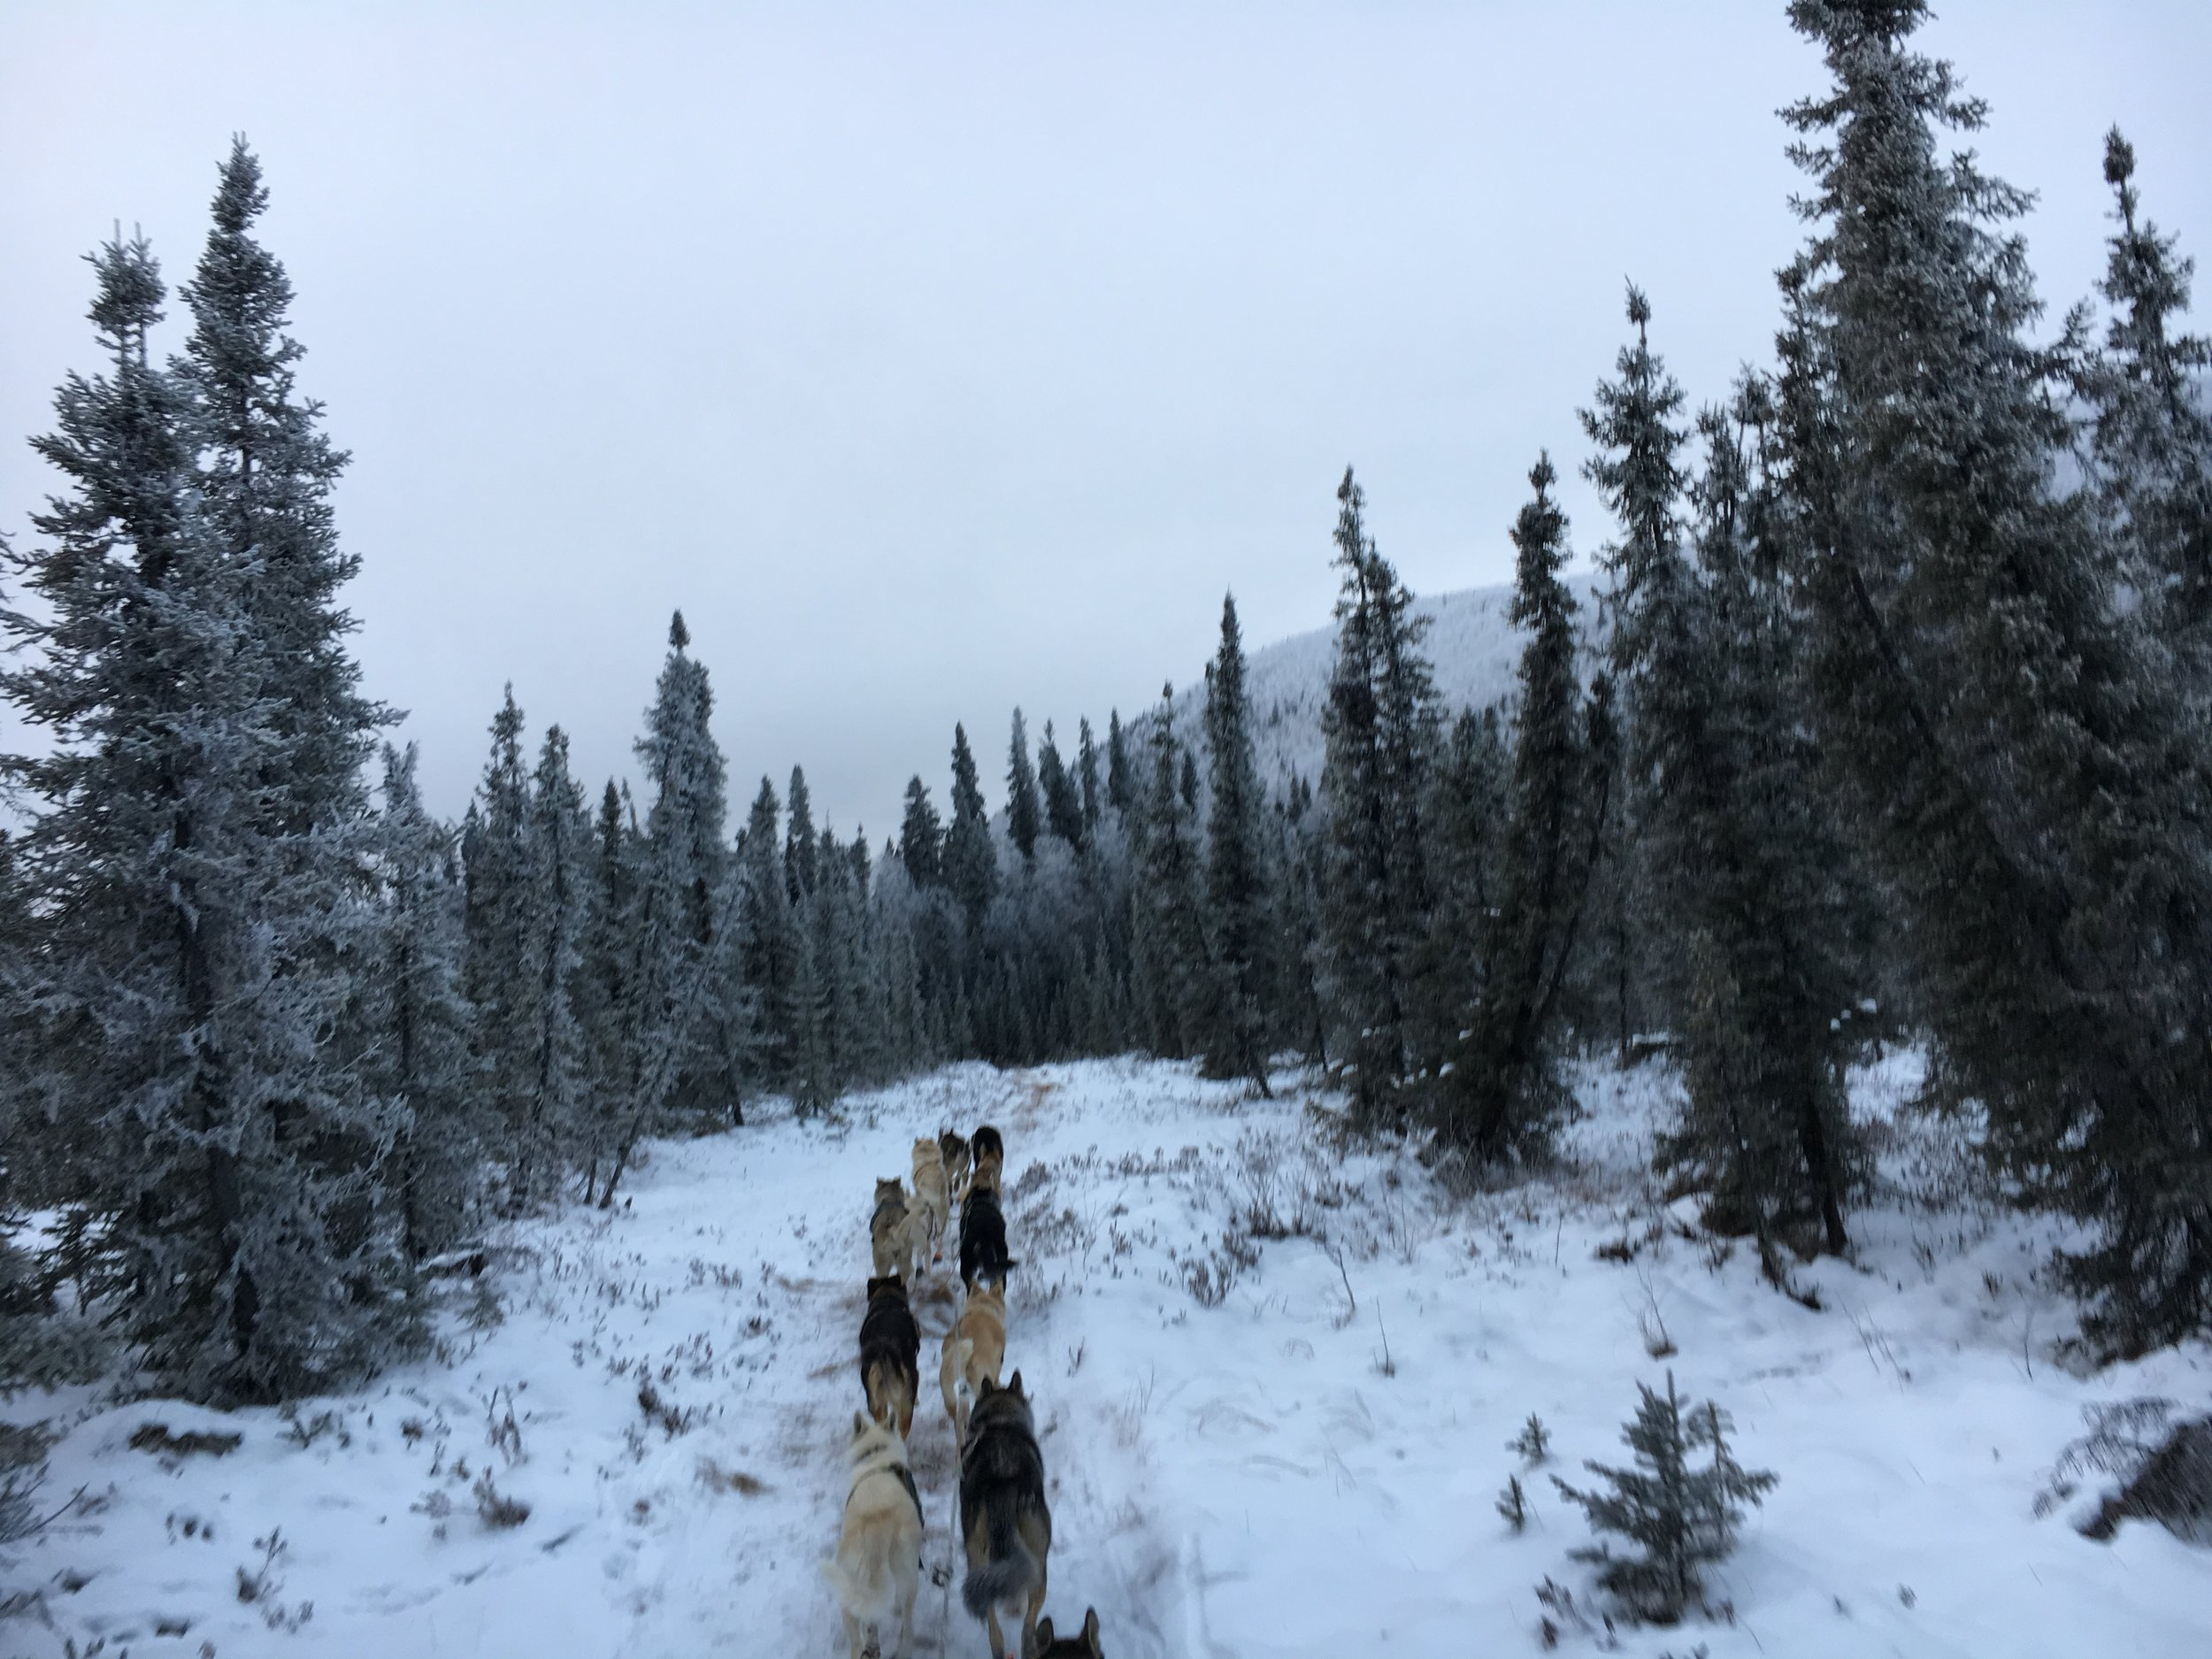 Our Run from yesterday-  Some mushing days, the dogs are the only color we see!